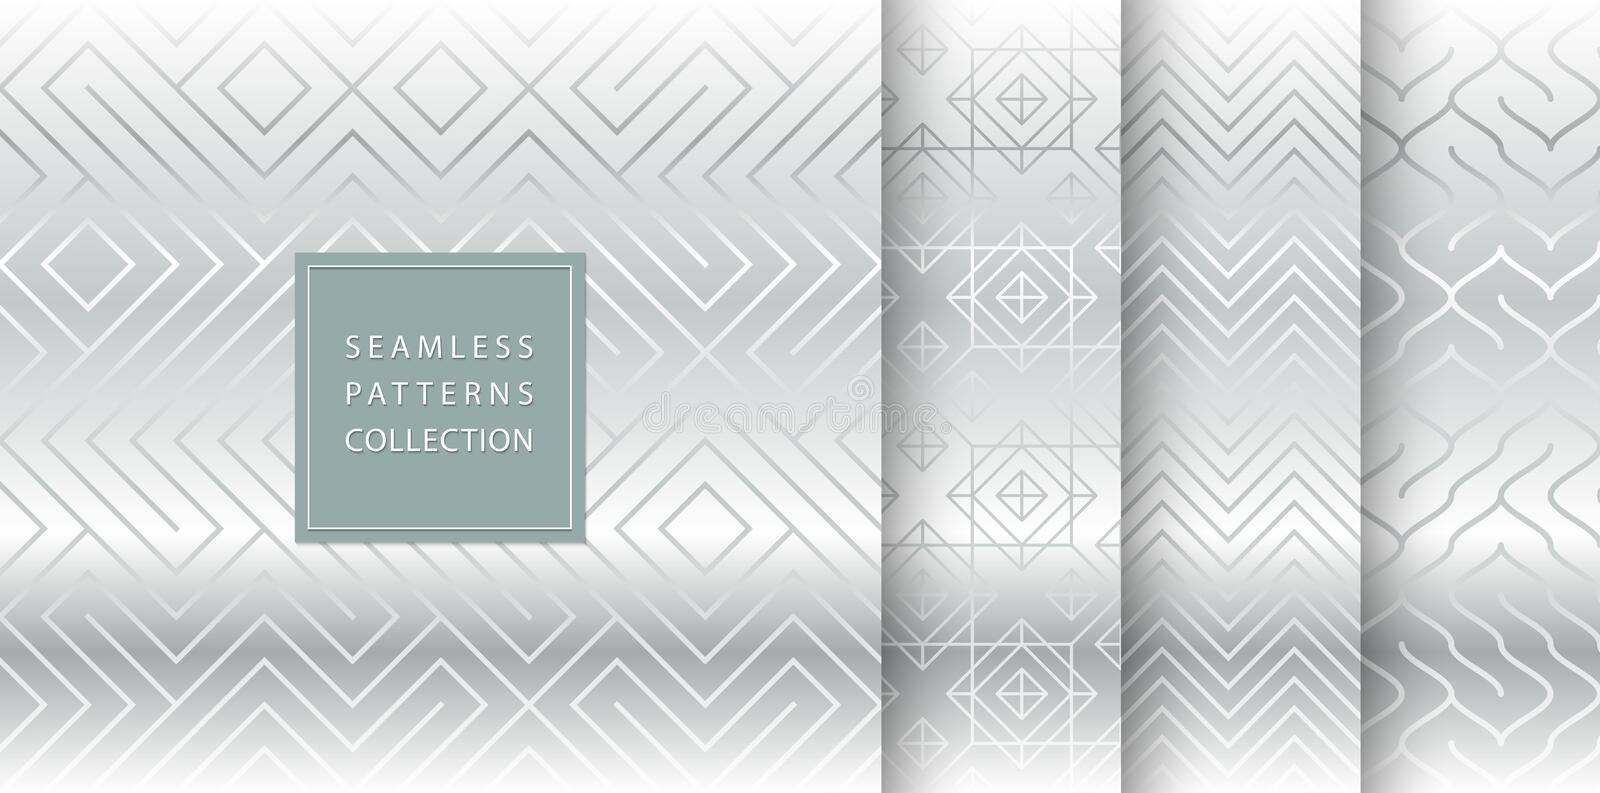 Geometric seamless silver pattern background. Simple vector graphic gray print. Repeating line abstract texture set. Minimalistic. Shapes. Stylish trellis vector illustration